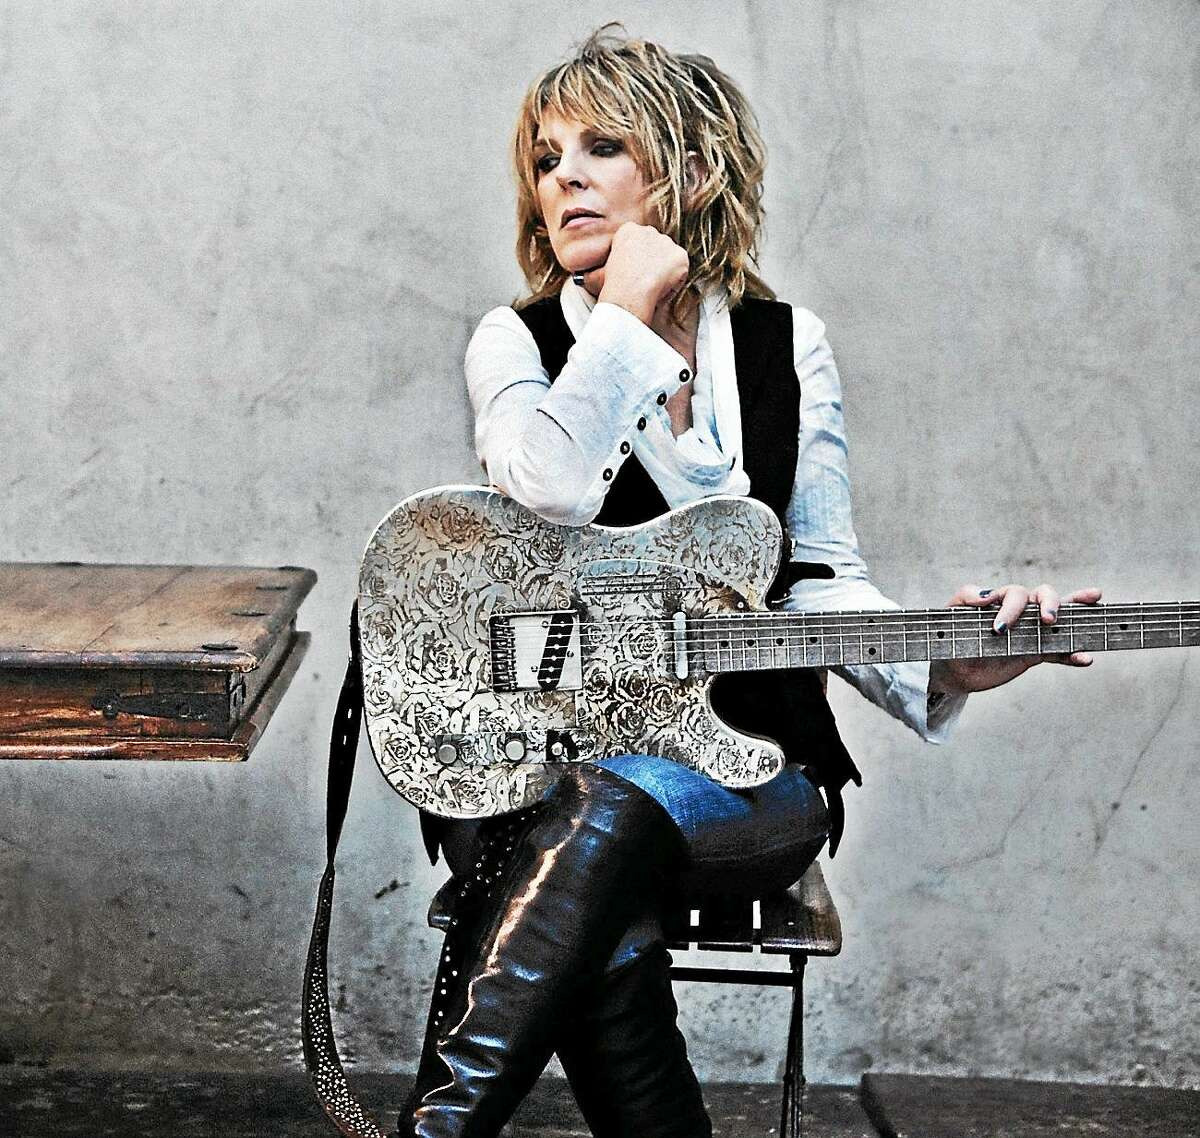 Considered one of the nation's greatest songwriters, Lucinda Williams blends blues, country, folk and rock influences into a body of work that is deeply listenable.